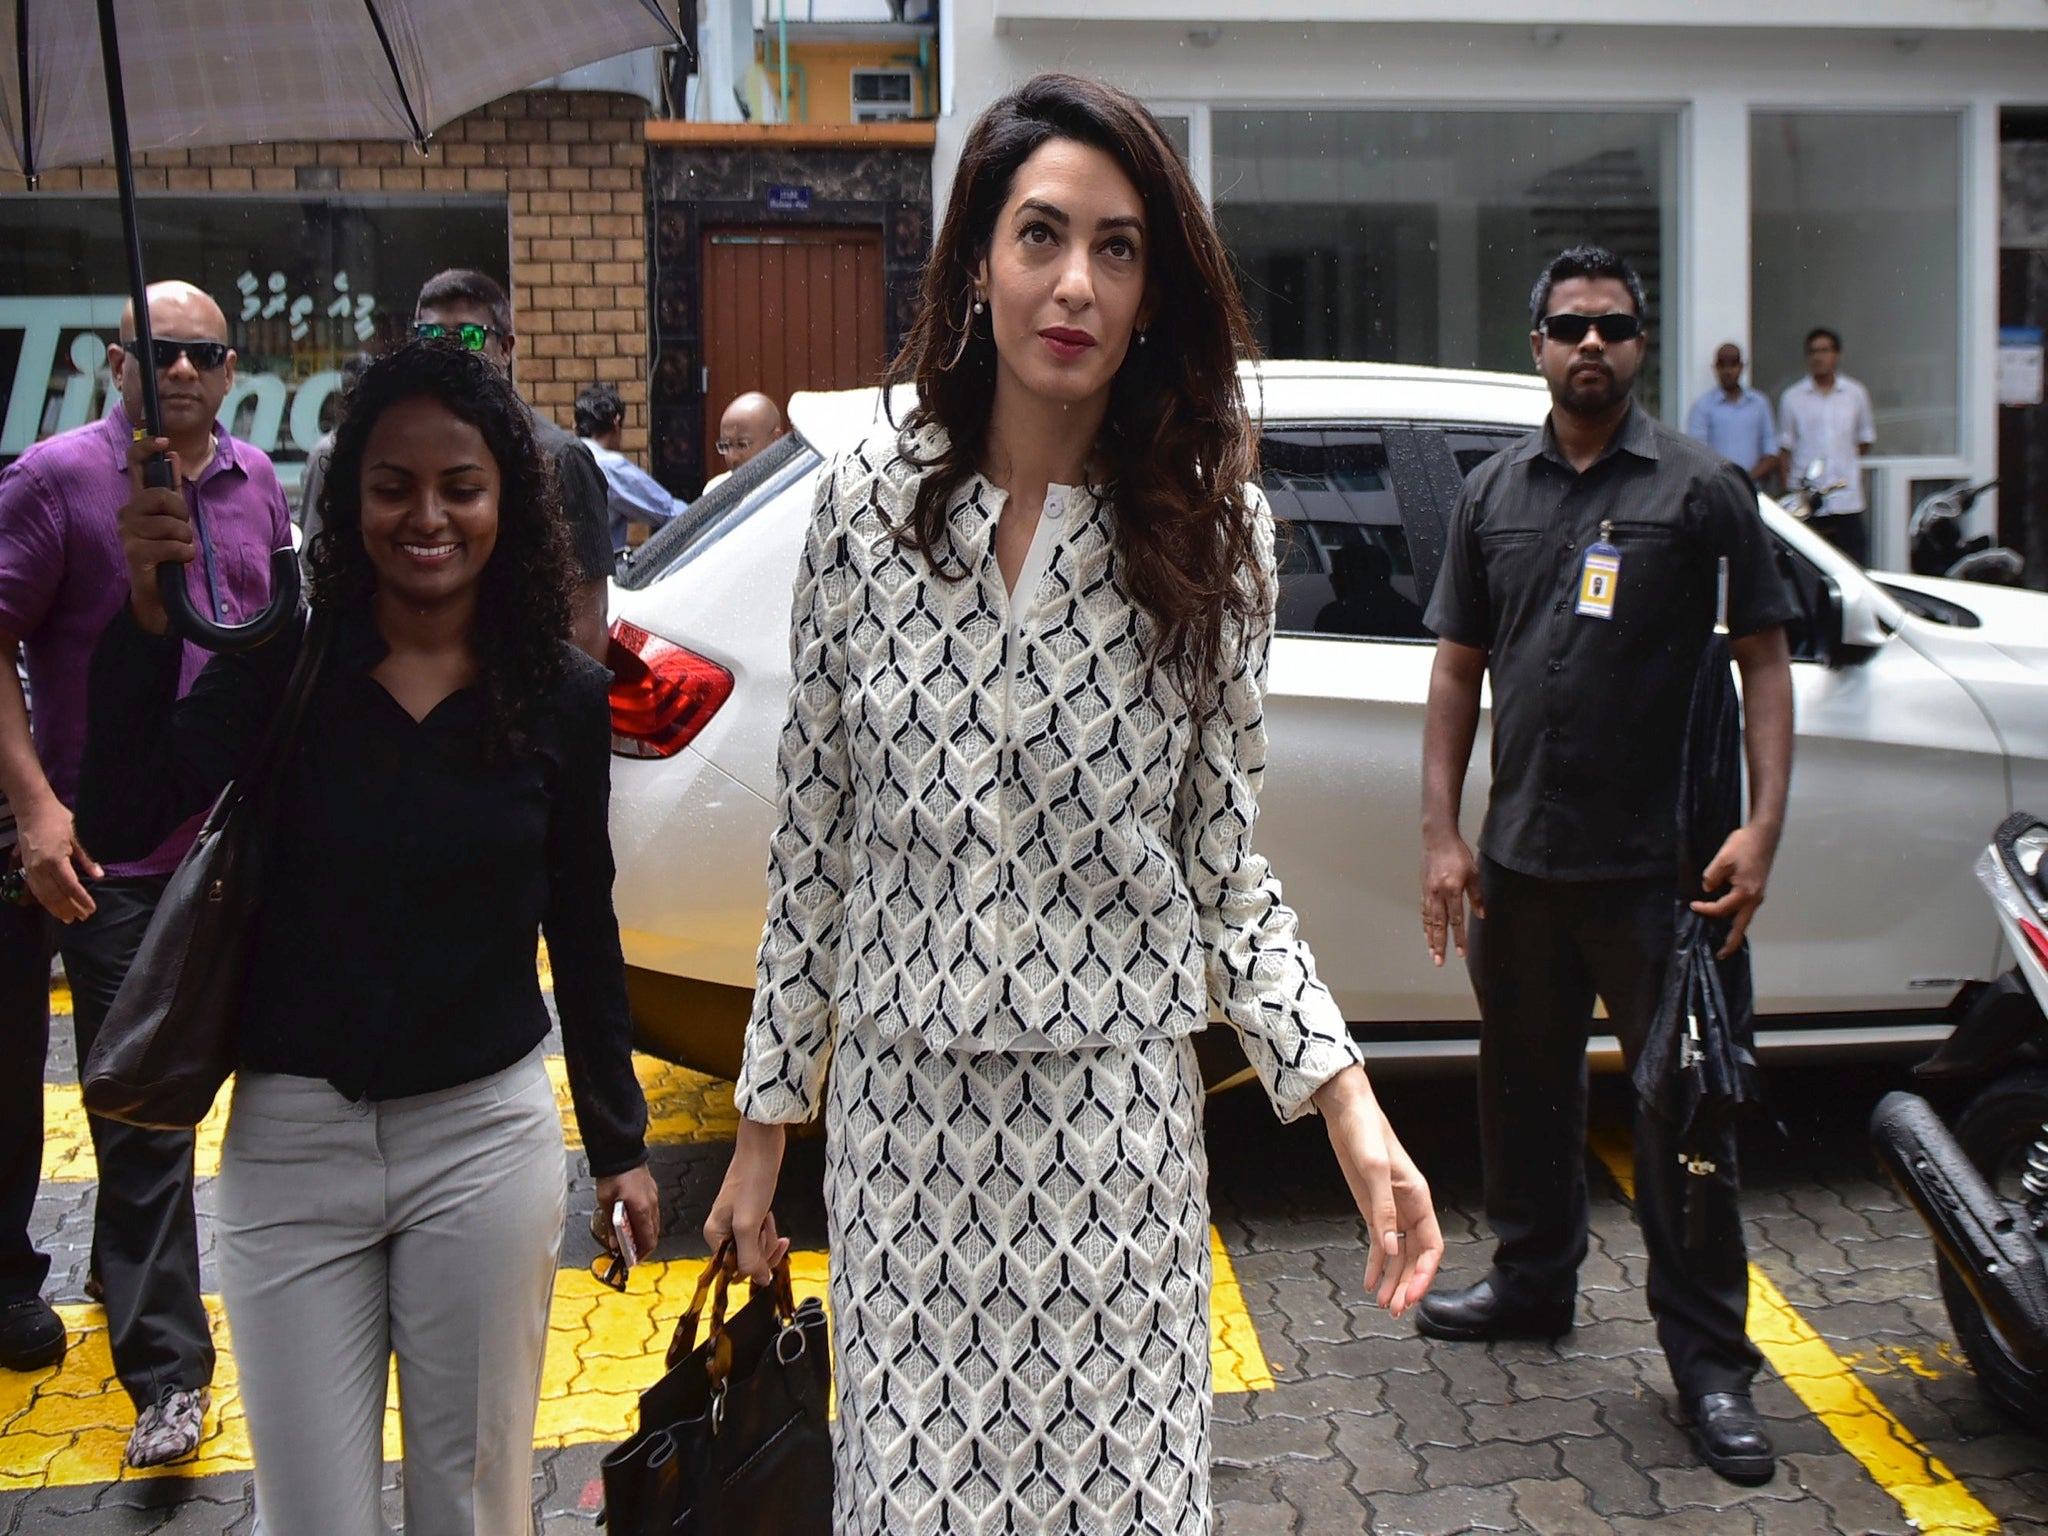 Amal Clooney 'turned down lucrative deal with luxury brand' as she